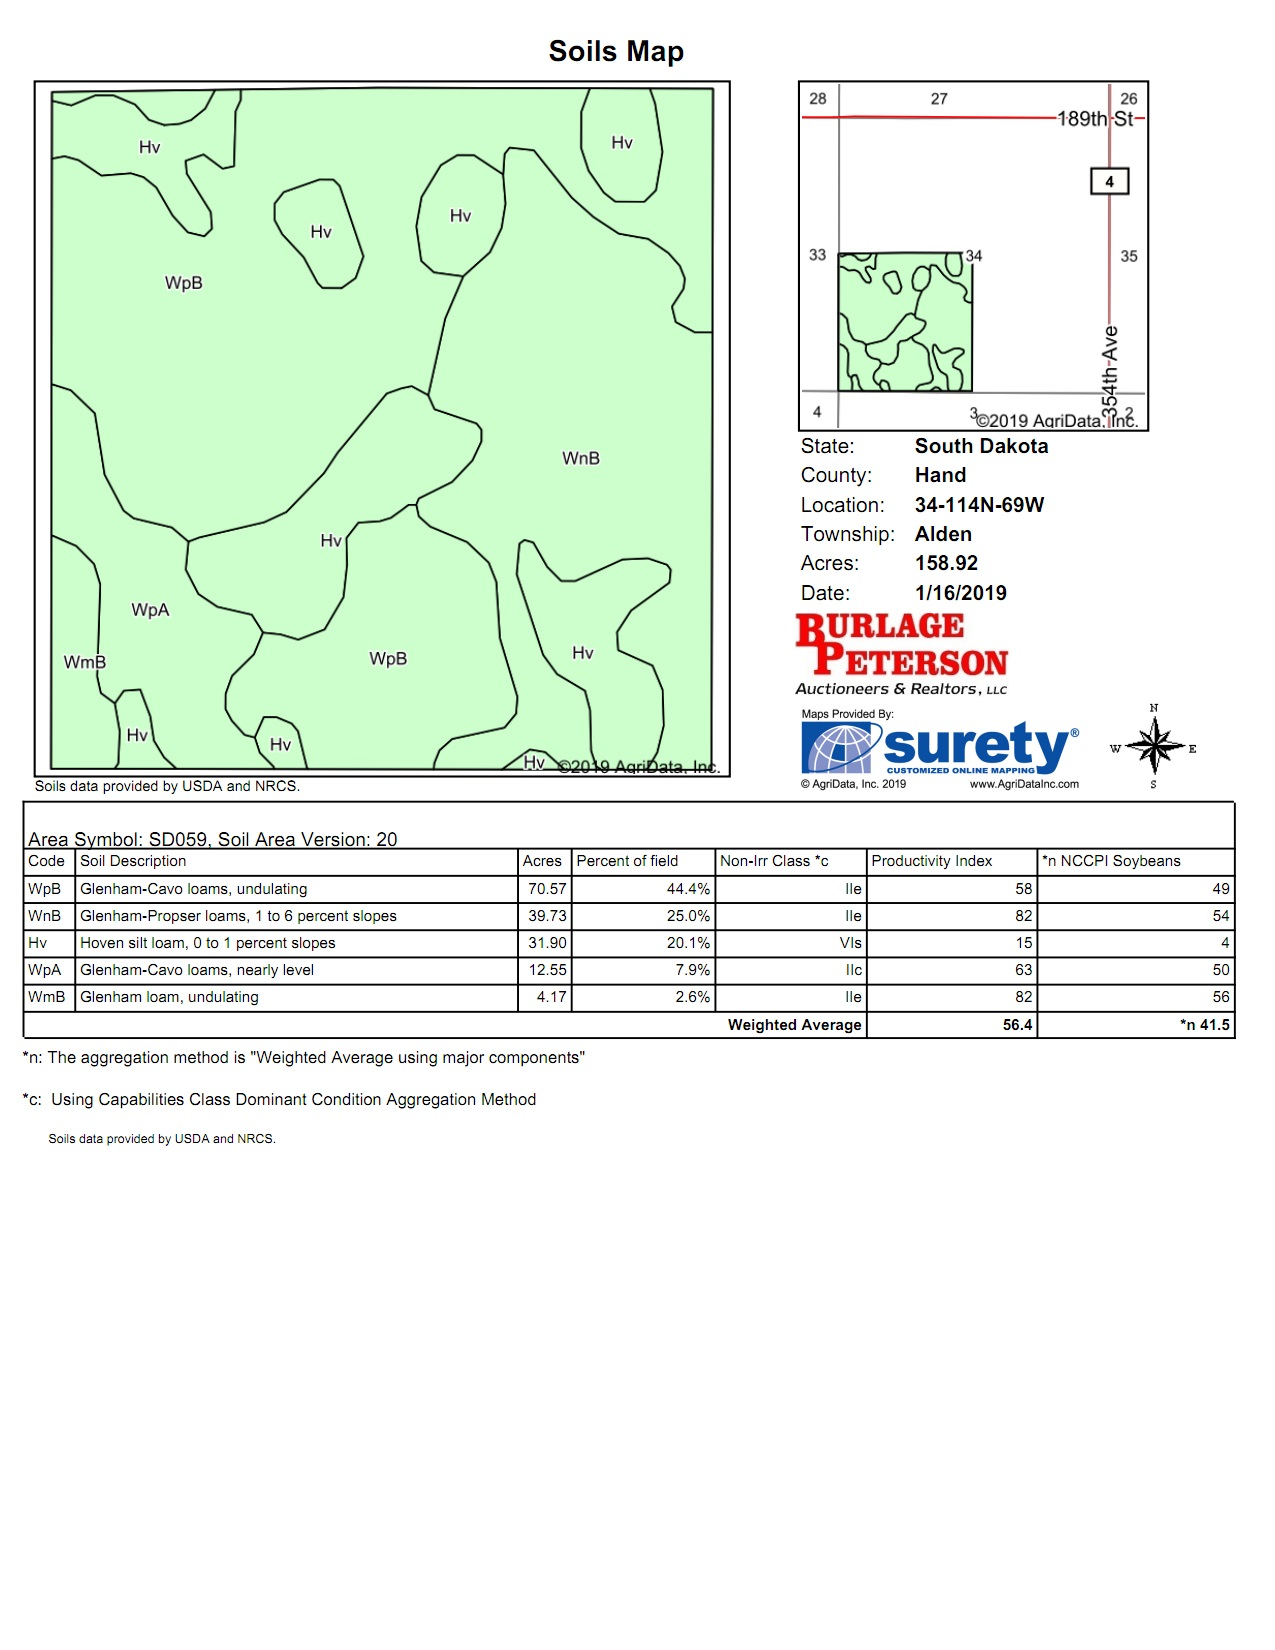 Tract 7 Soil Map